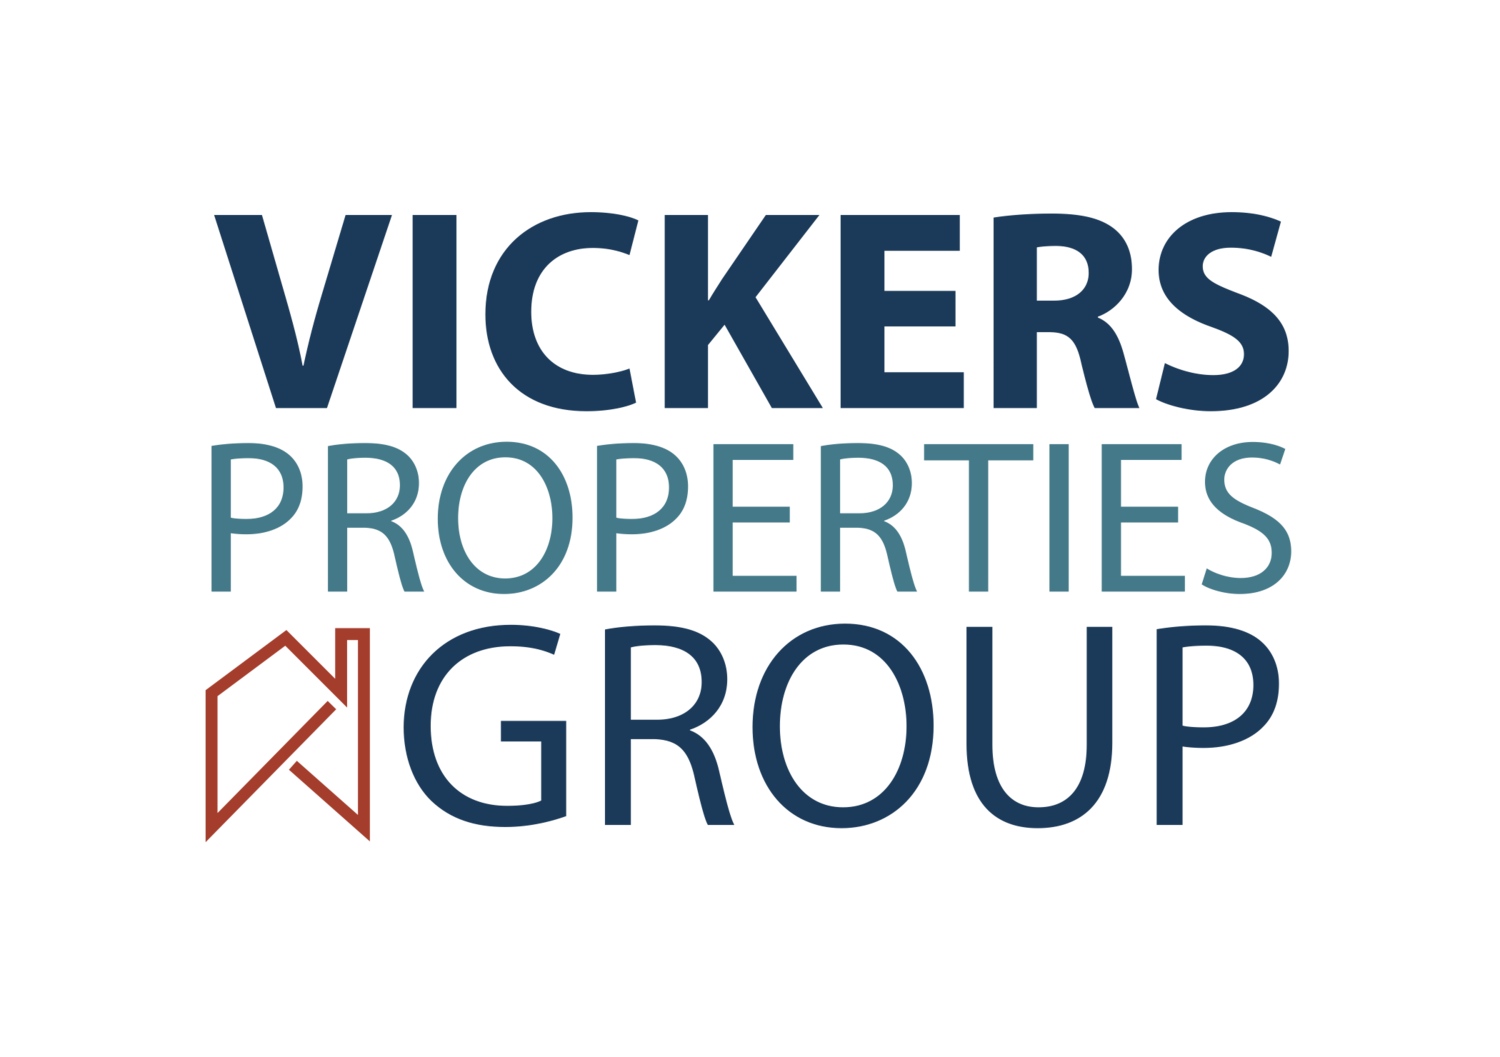 Vickers Properties Group